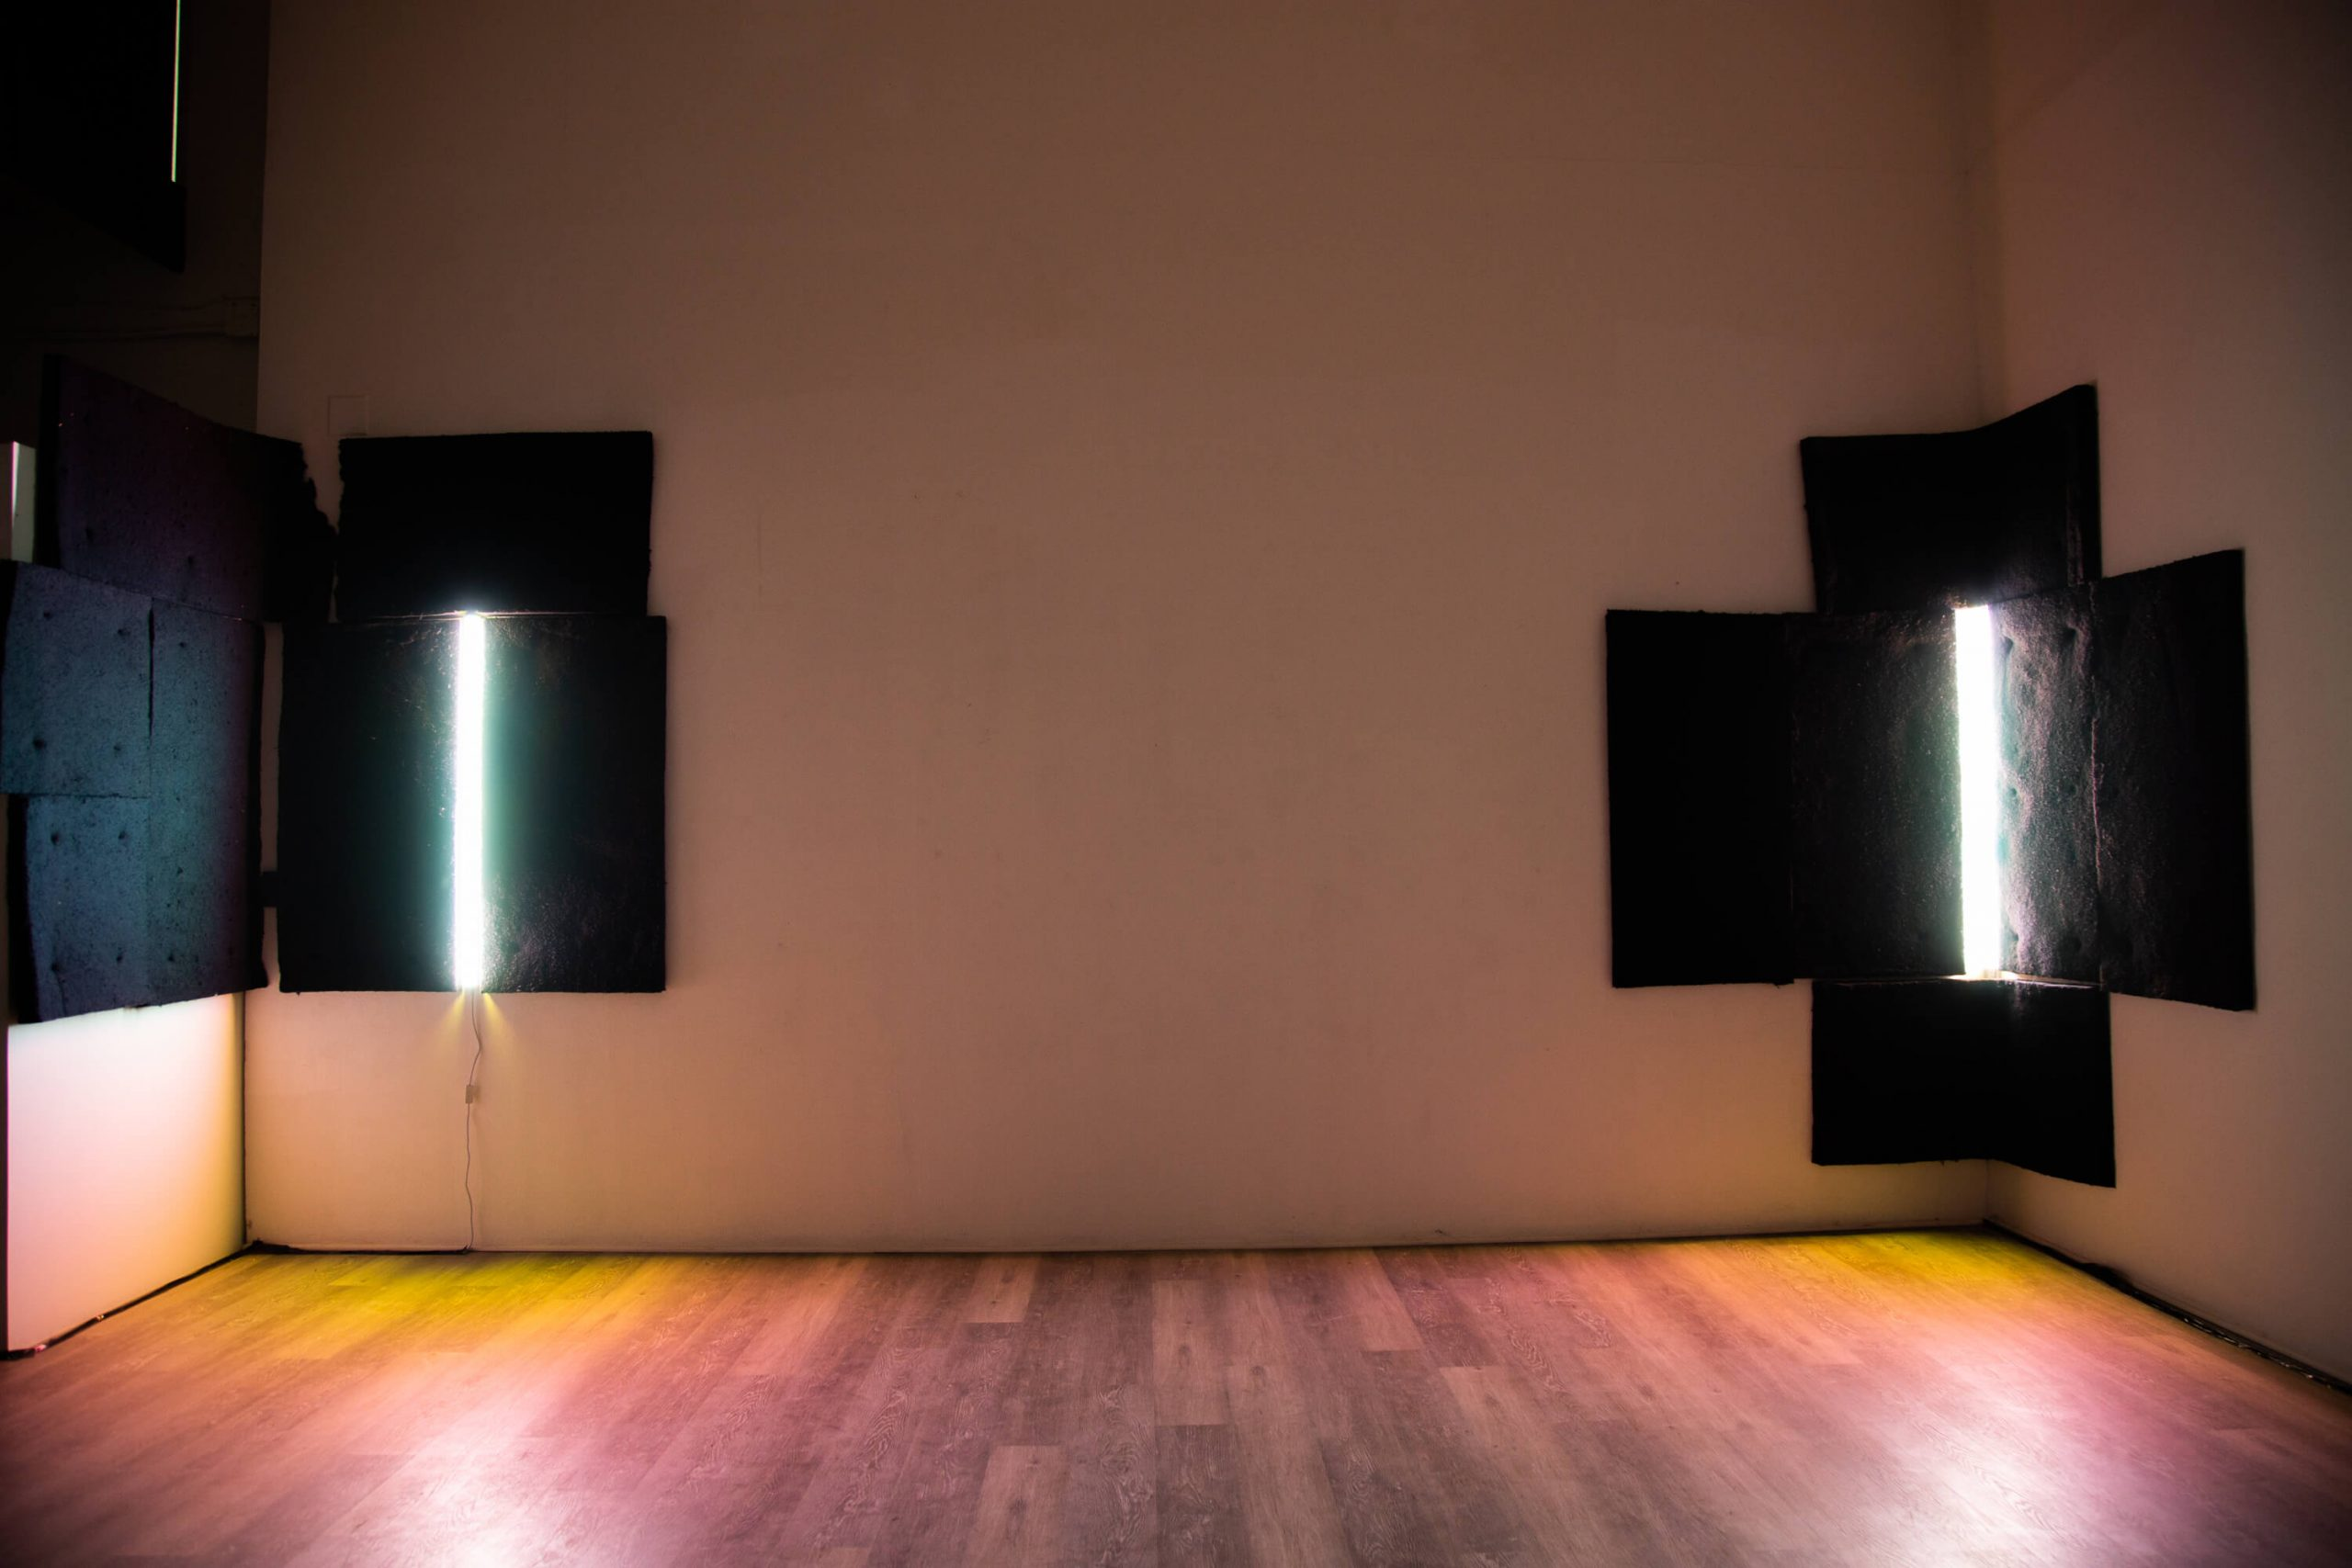 Two abstract lit sculptures hand in left and right corner of a room. Each sculpture in a vertical LED bar set into a geometric, rectangular shape that fits into the corner.